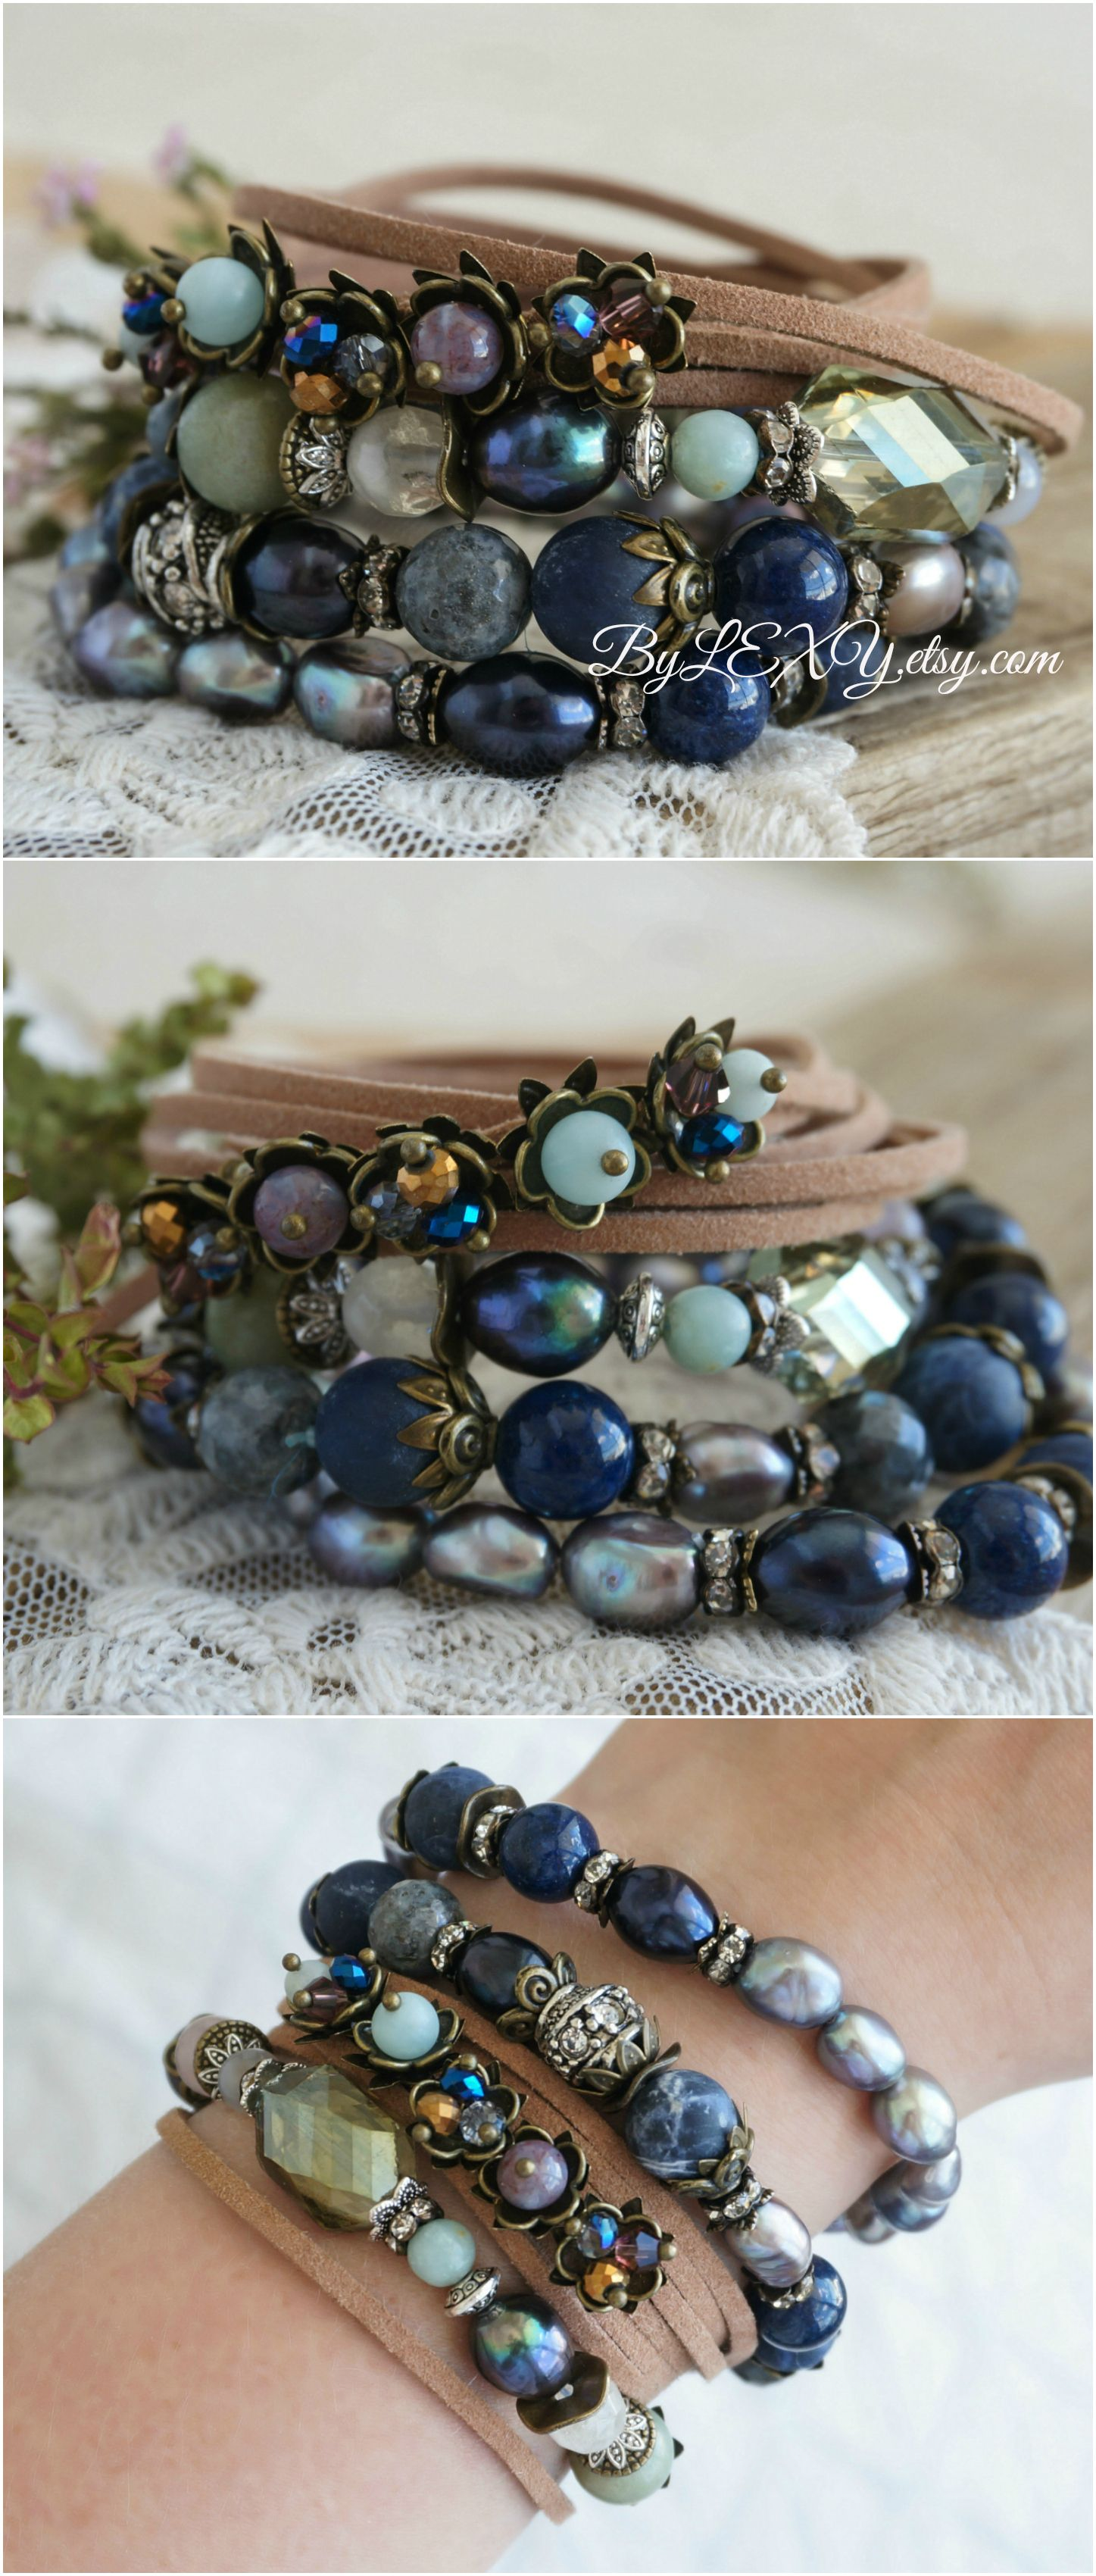 pictures DIY Boho-Chic Leather Bracelet With Beads And Chain